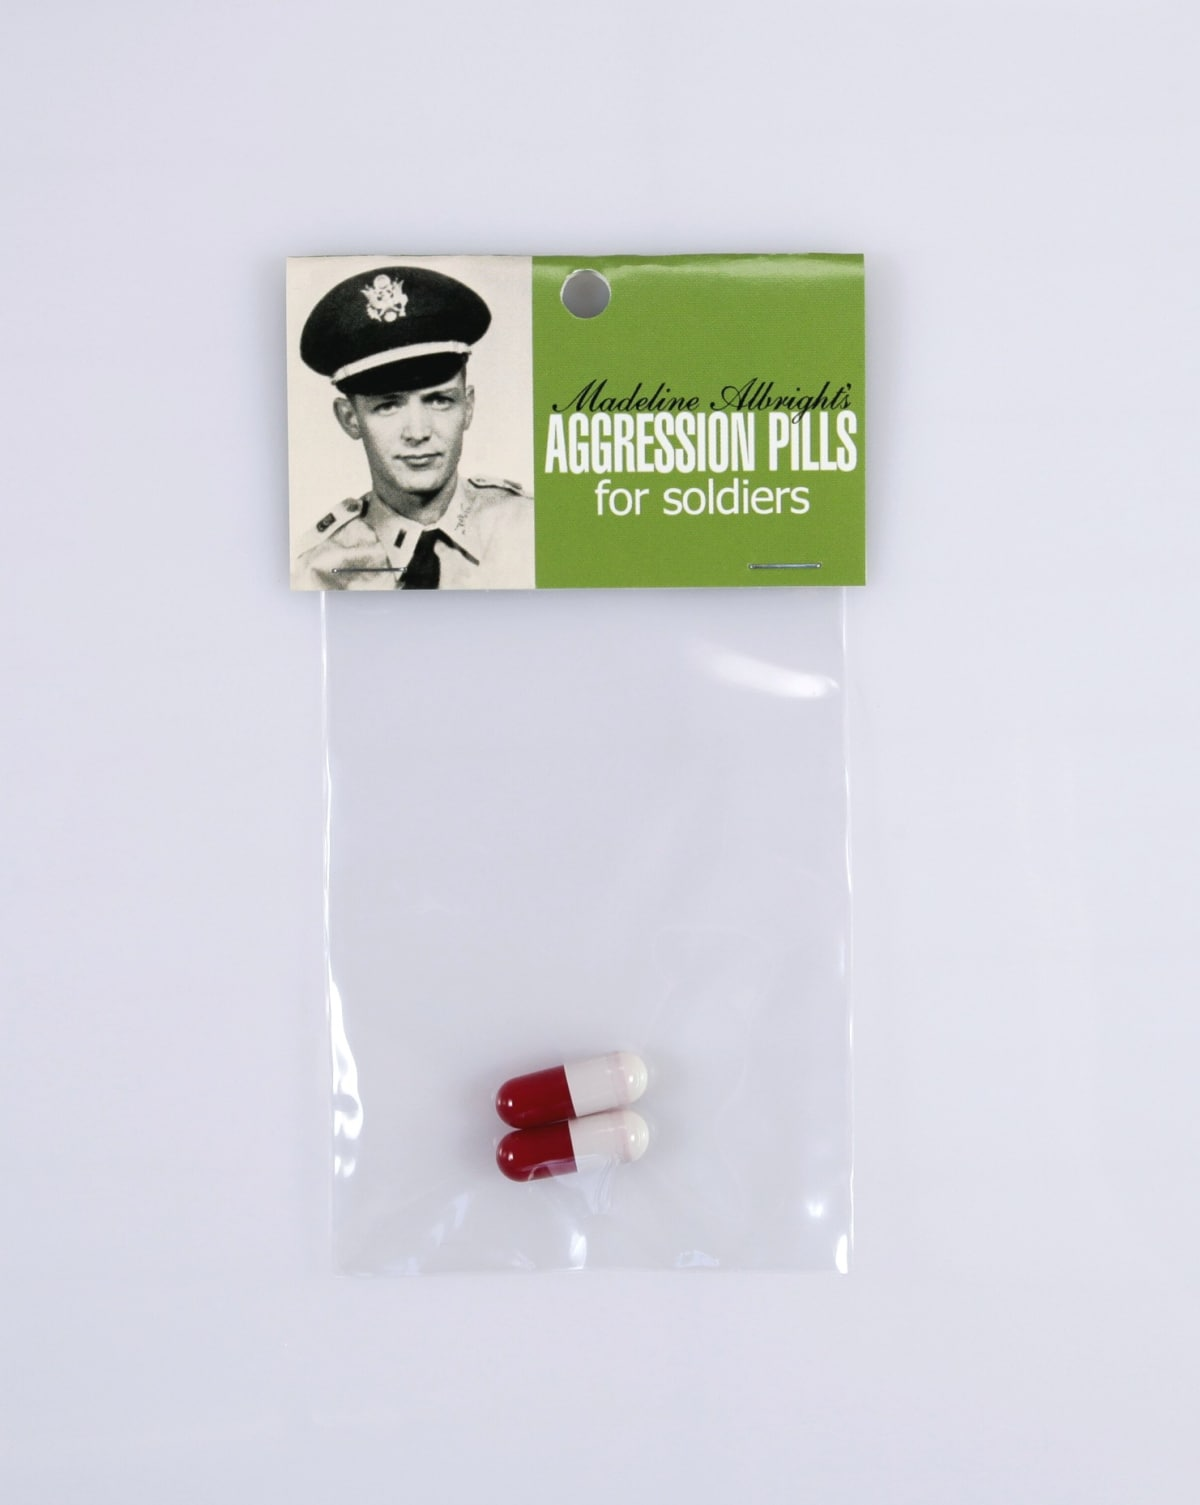 Aggression pills for soldiers